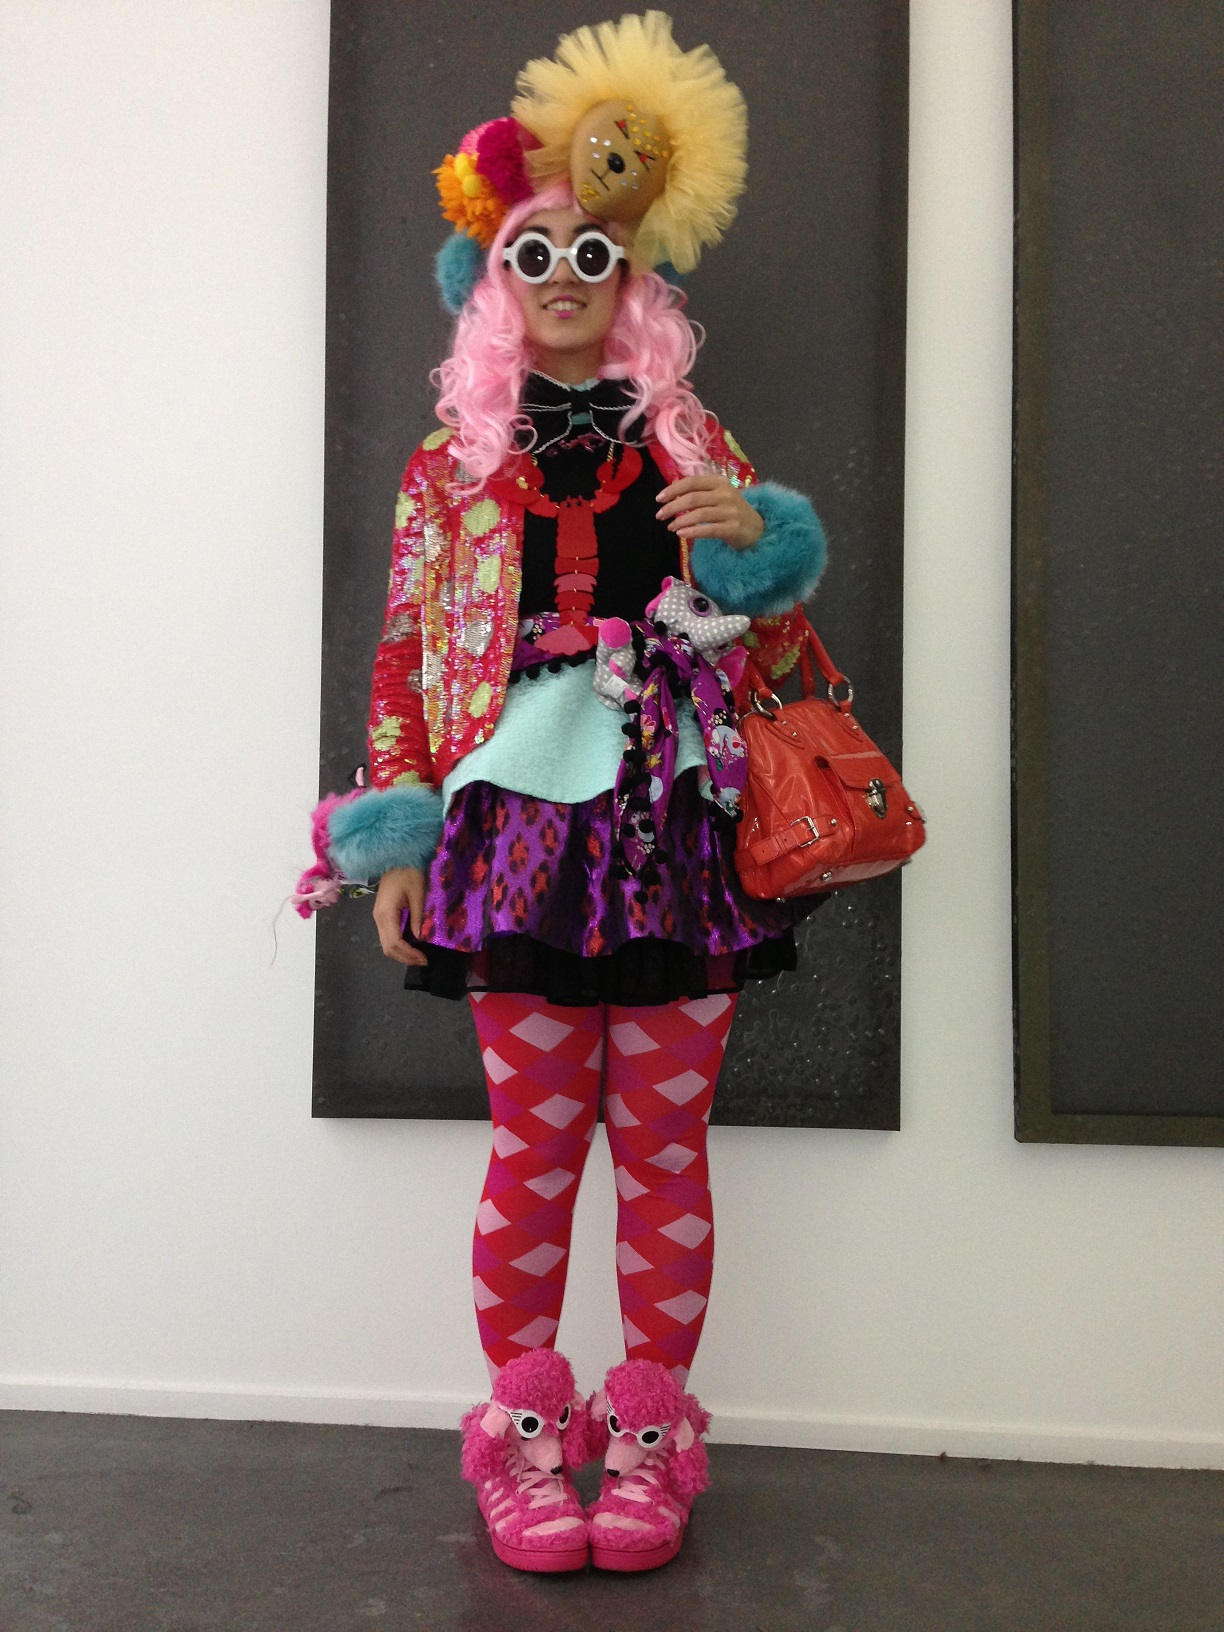 My outfit consisted of many layered pieces from chain stores with my wig from Japan and headwear made by myself